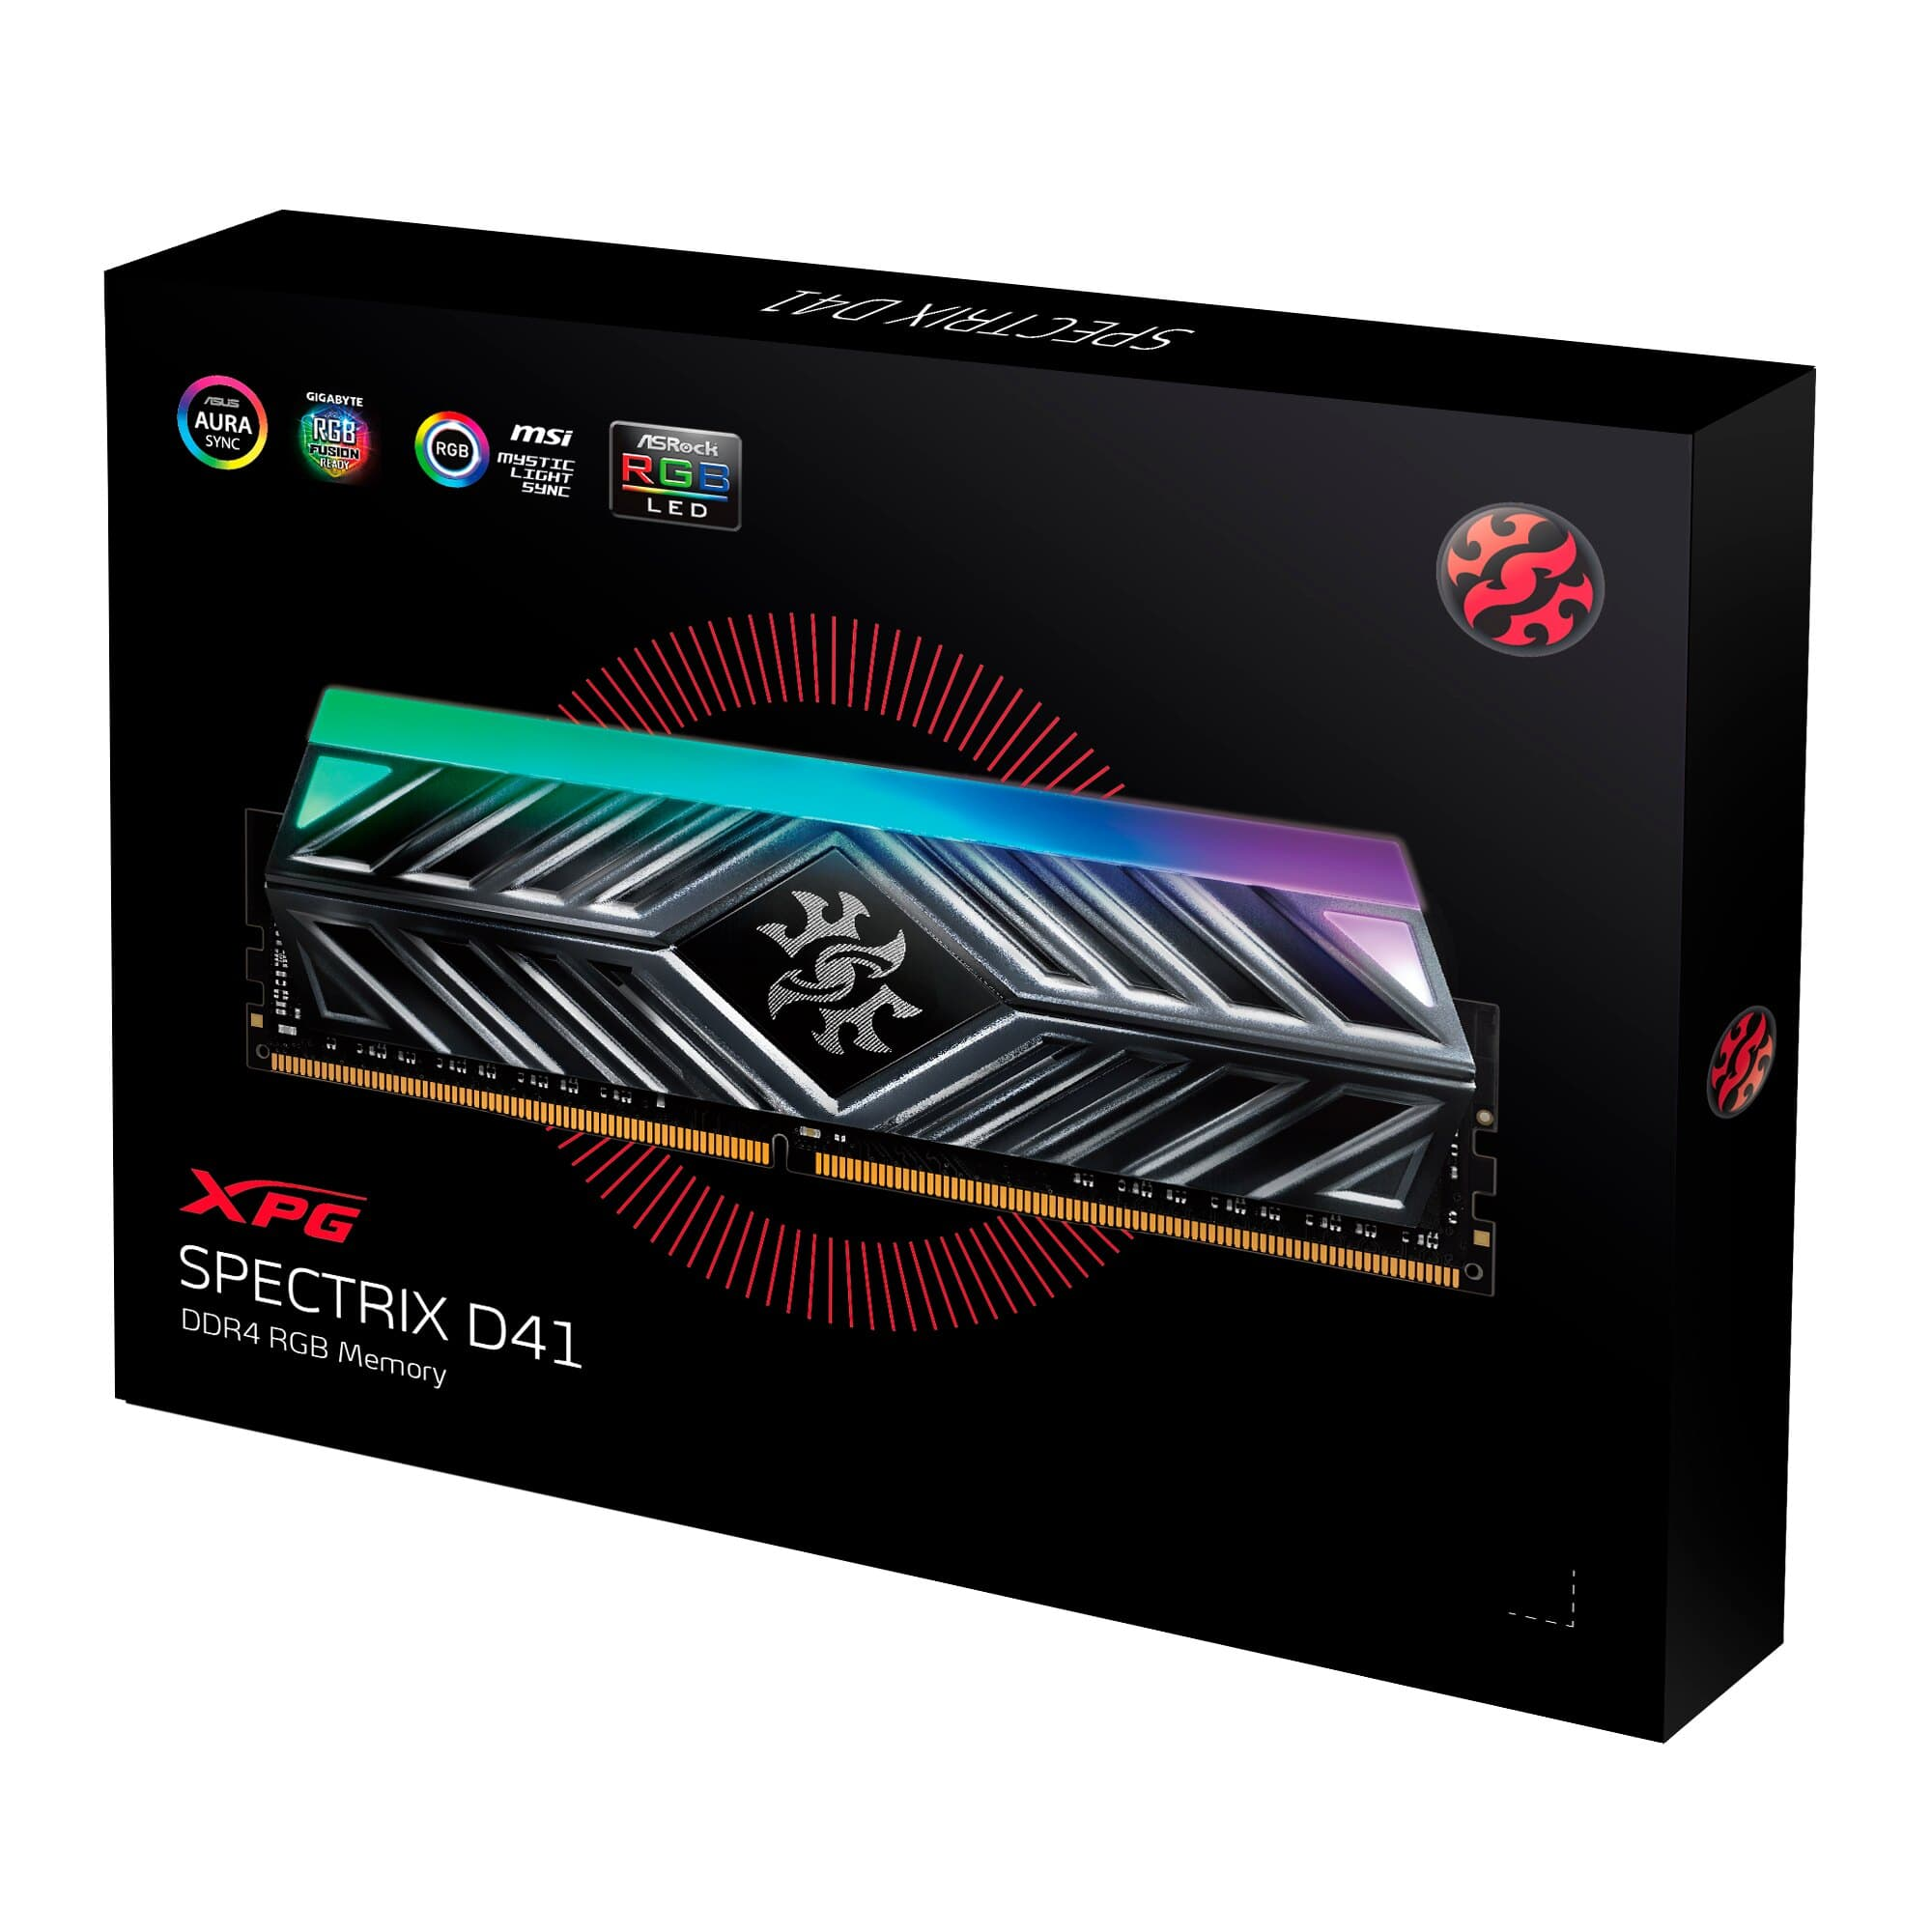 ADATA XPG Spectrix D41 16GB SDRAM for $64.59 AC + Free Shipping